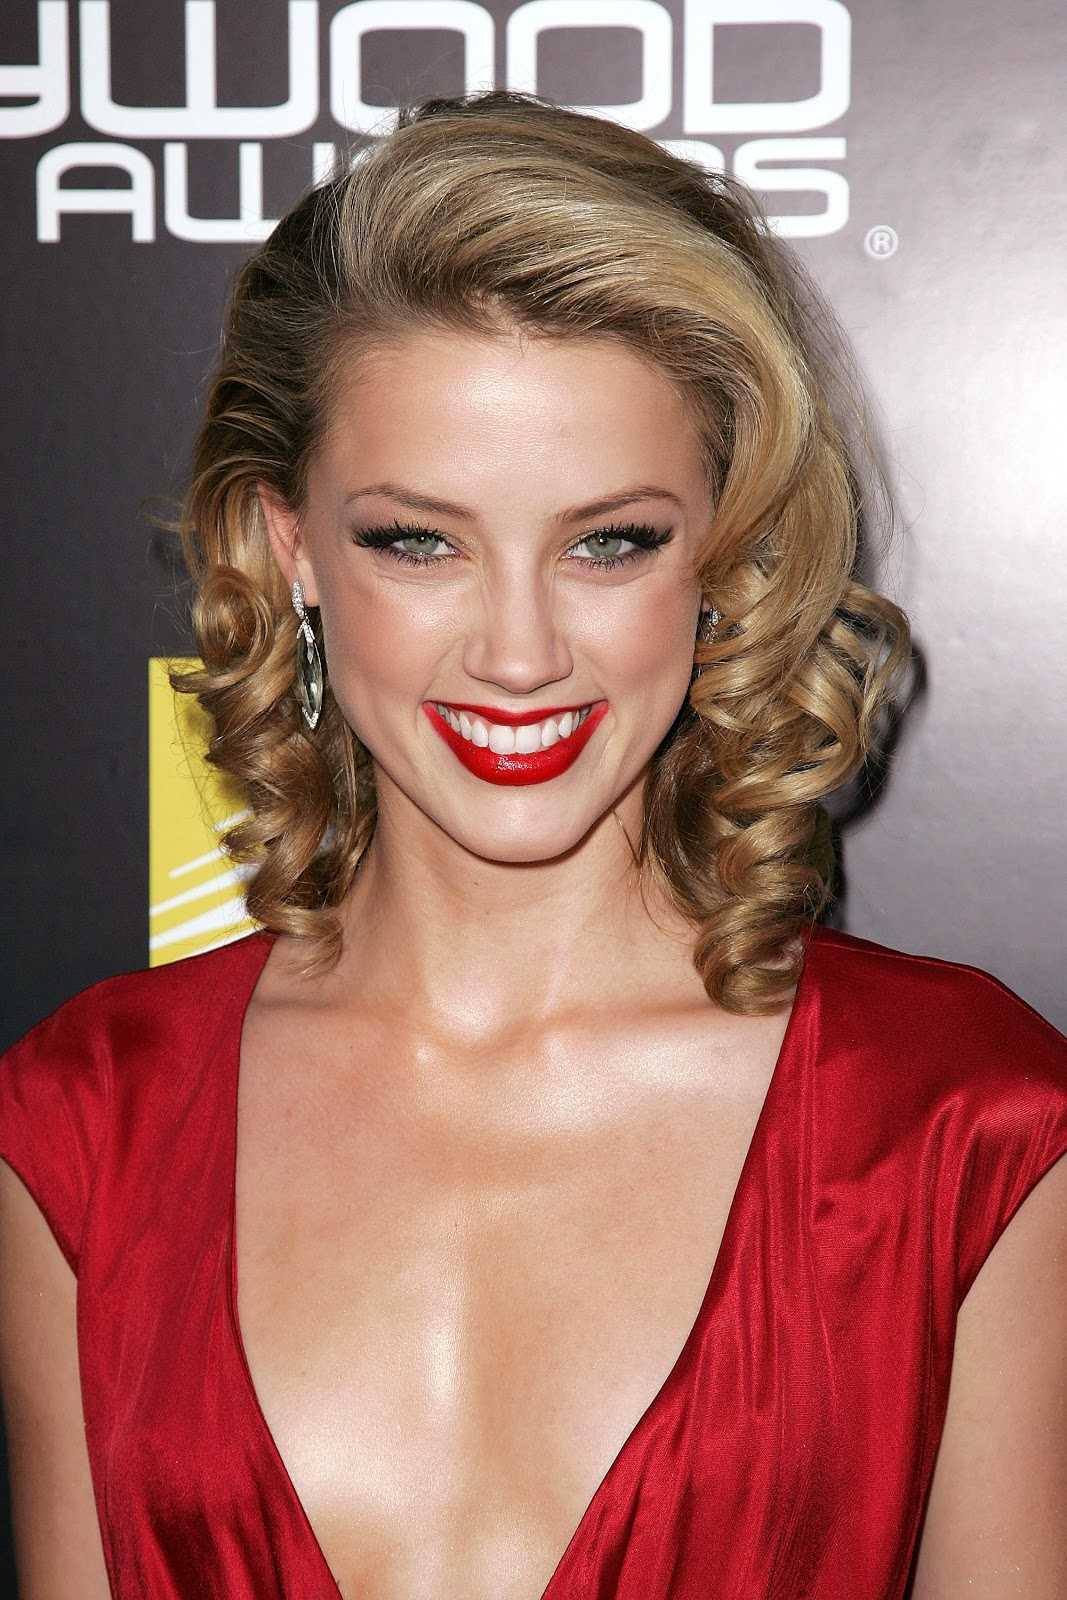 Amber Heard Is The Most Scientifically Beautiful Woman: Hot Hollywood Actress Amber Heard